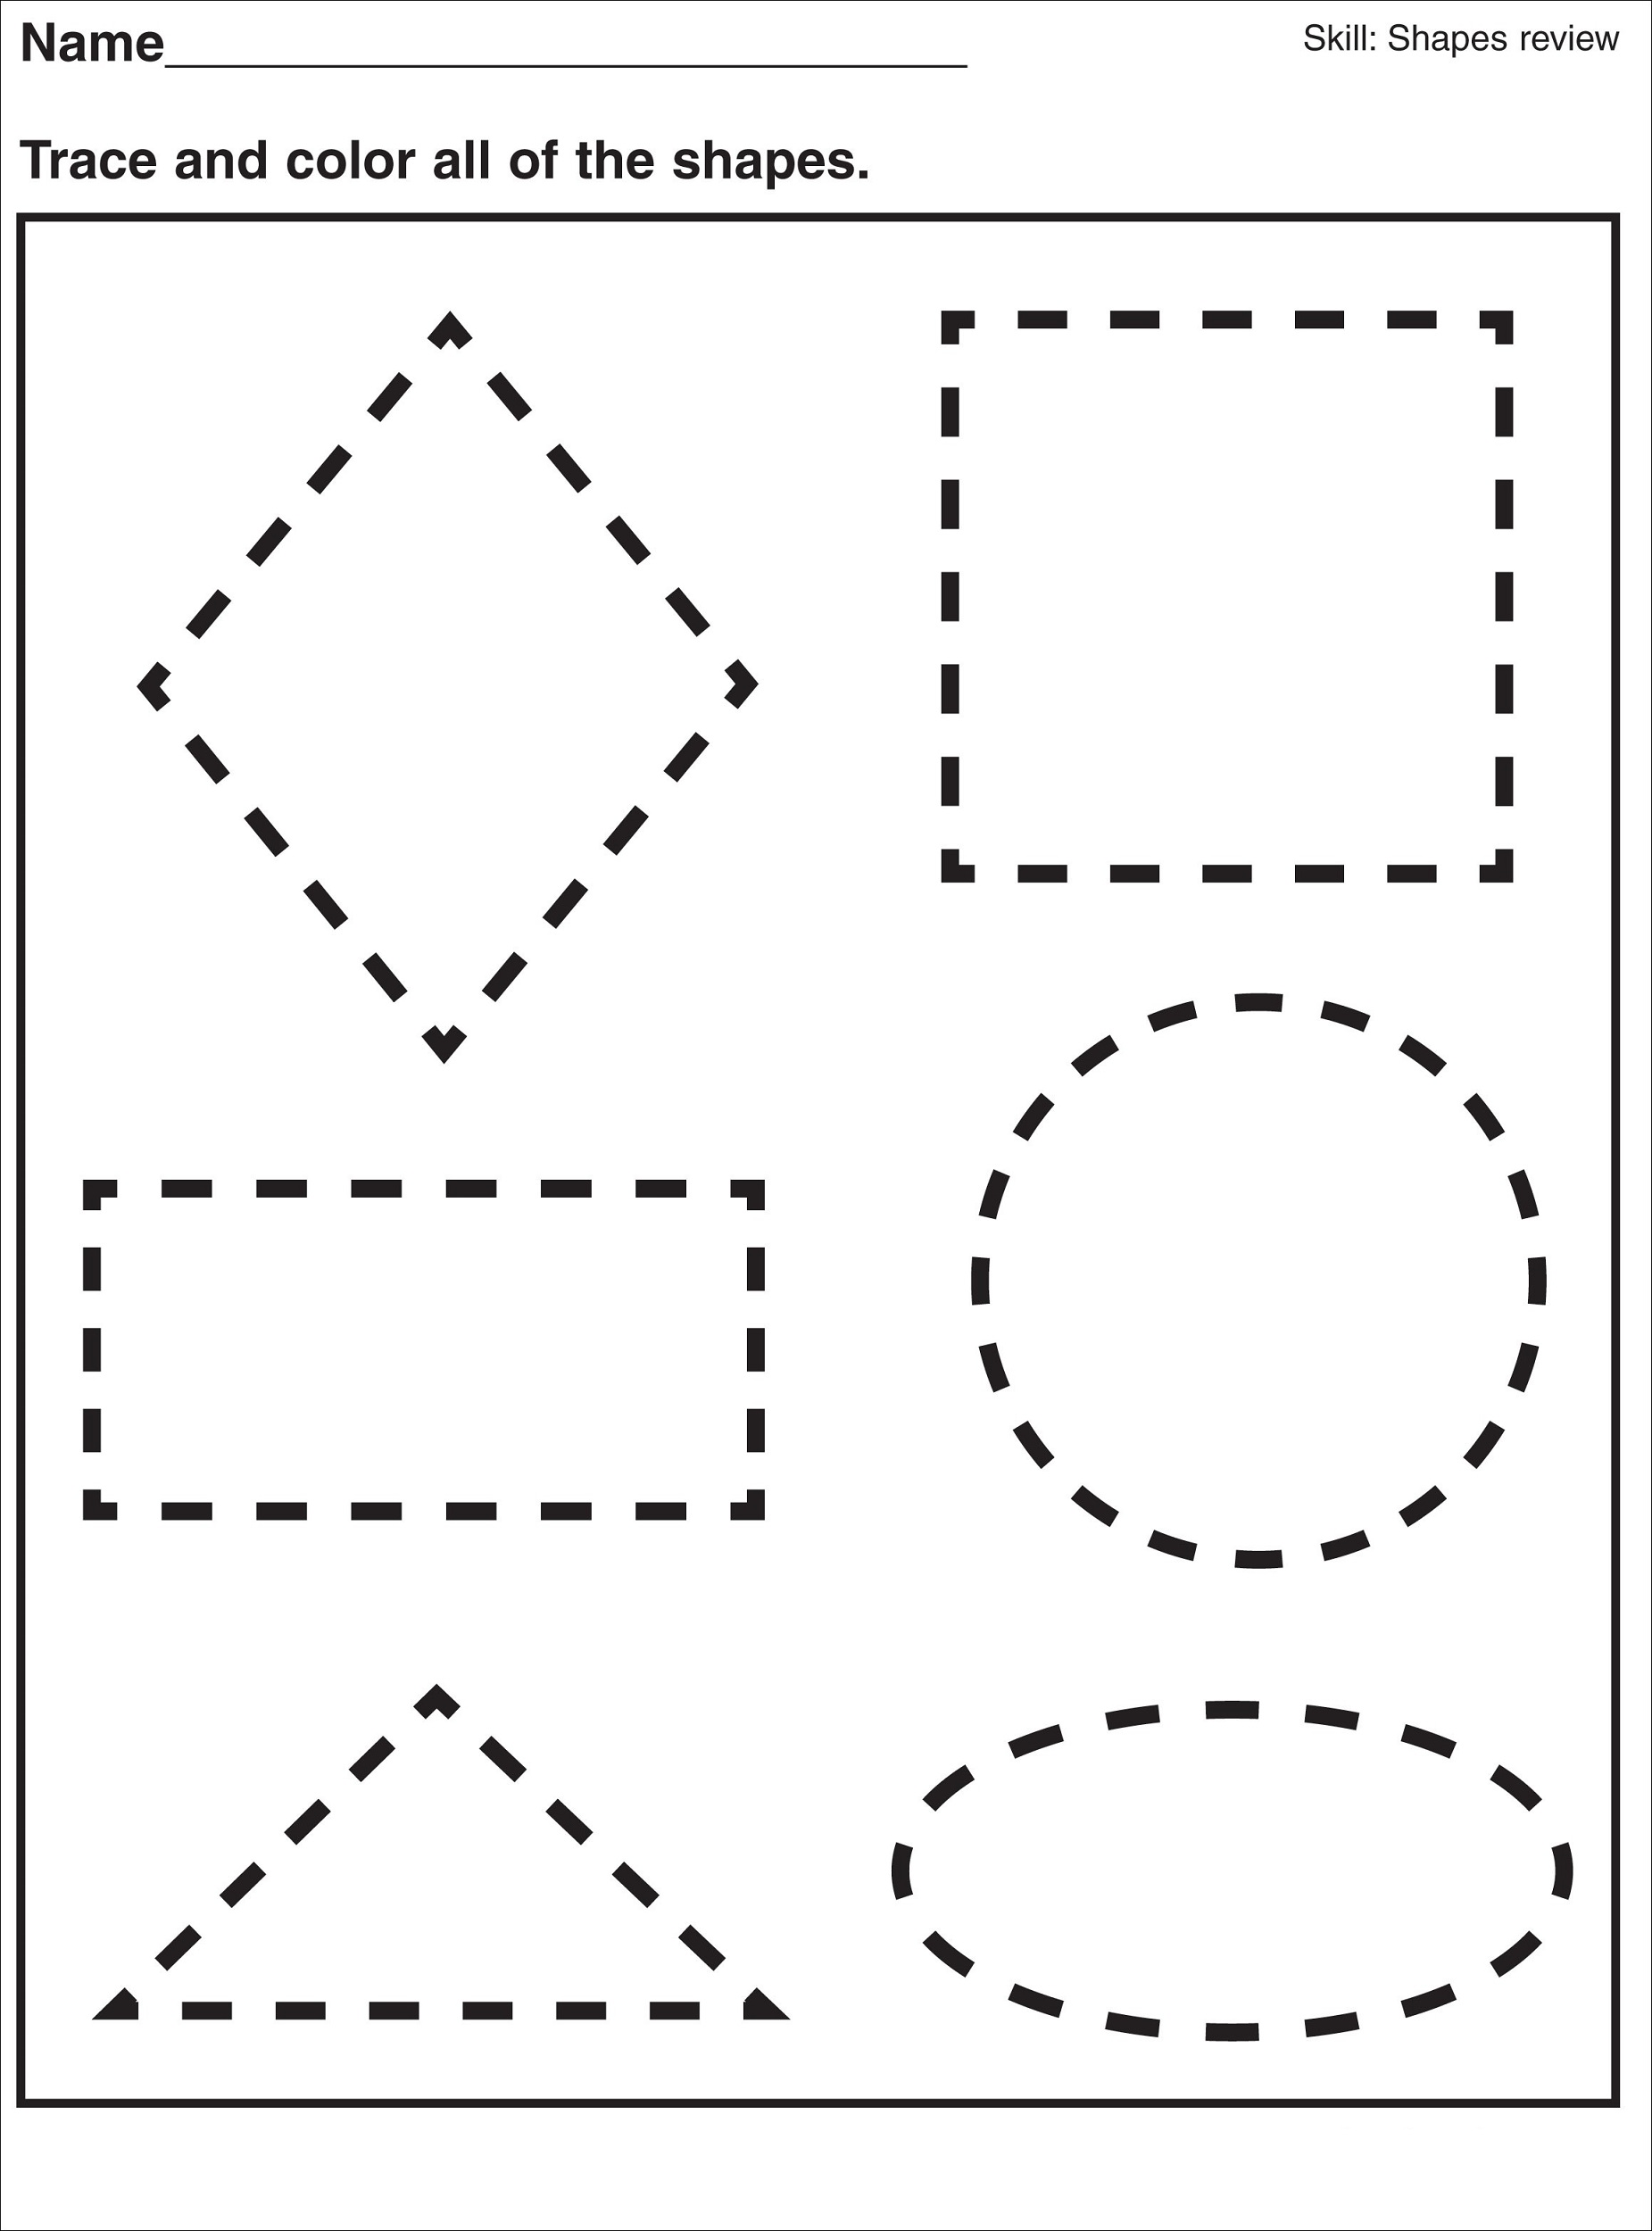 Oval Preschool Worksheet Trace And Color